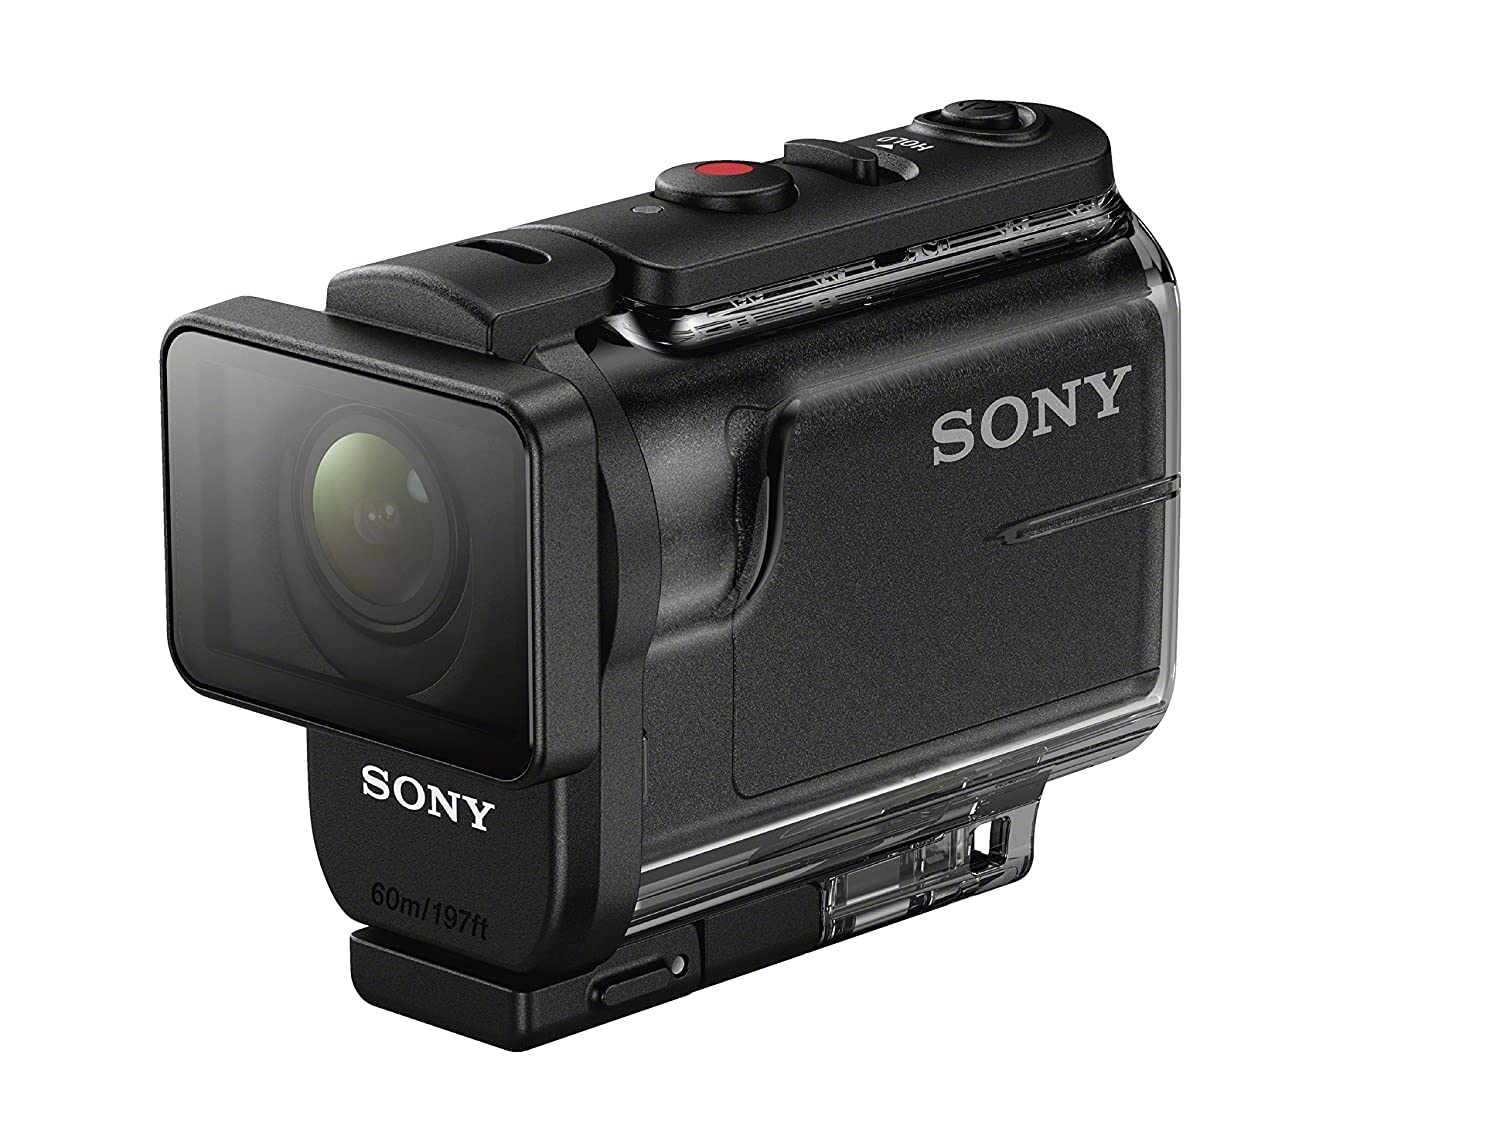 Top 5 Best Sony Action Cameras (2019 Review & Buying Guide) 4